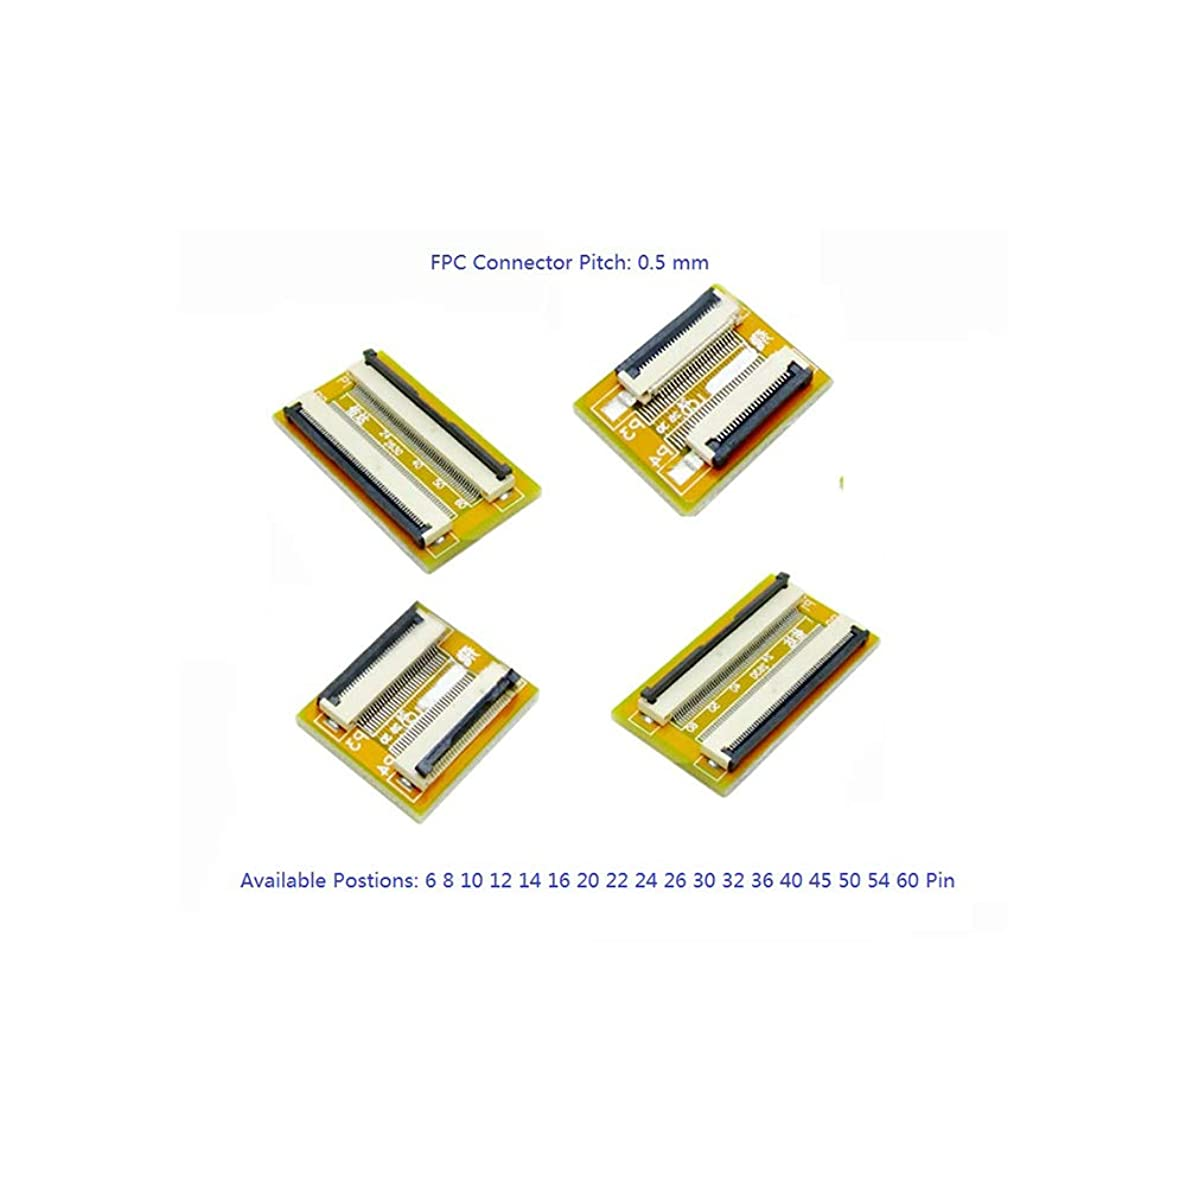 1 pc Flexible Flat Cable FFC FPC Extension PCB Pitch 0.5 mm 6 P 8 10 12 14 16 20 22 24 26 30 32 36 40 45 50 54 60 Pin,30 Pin